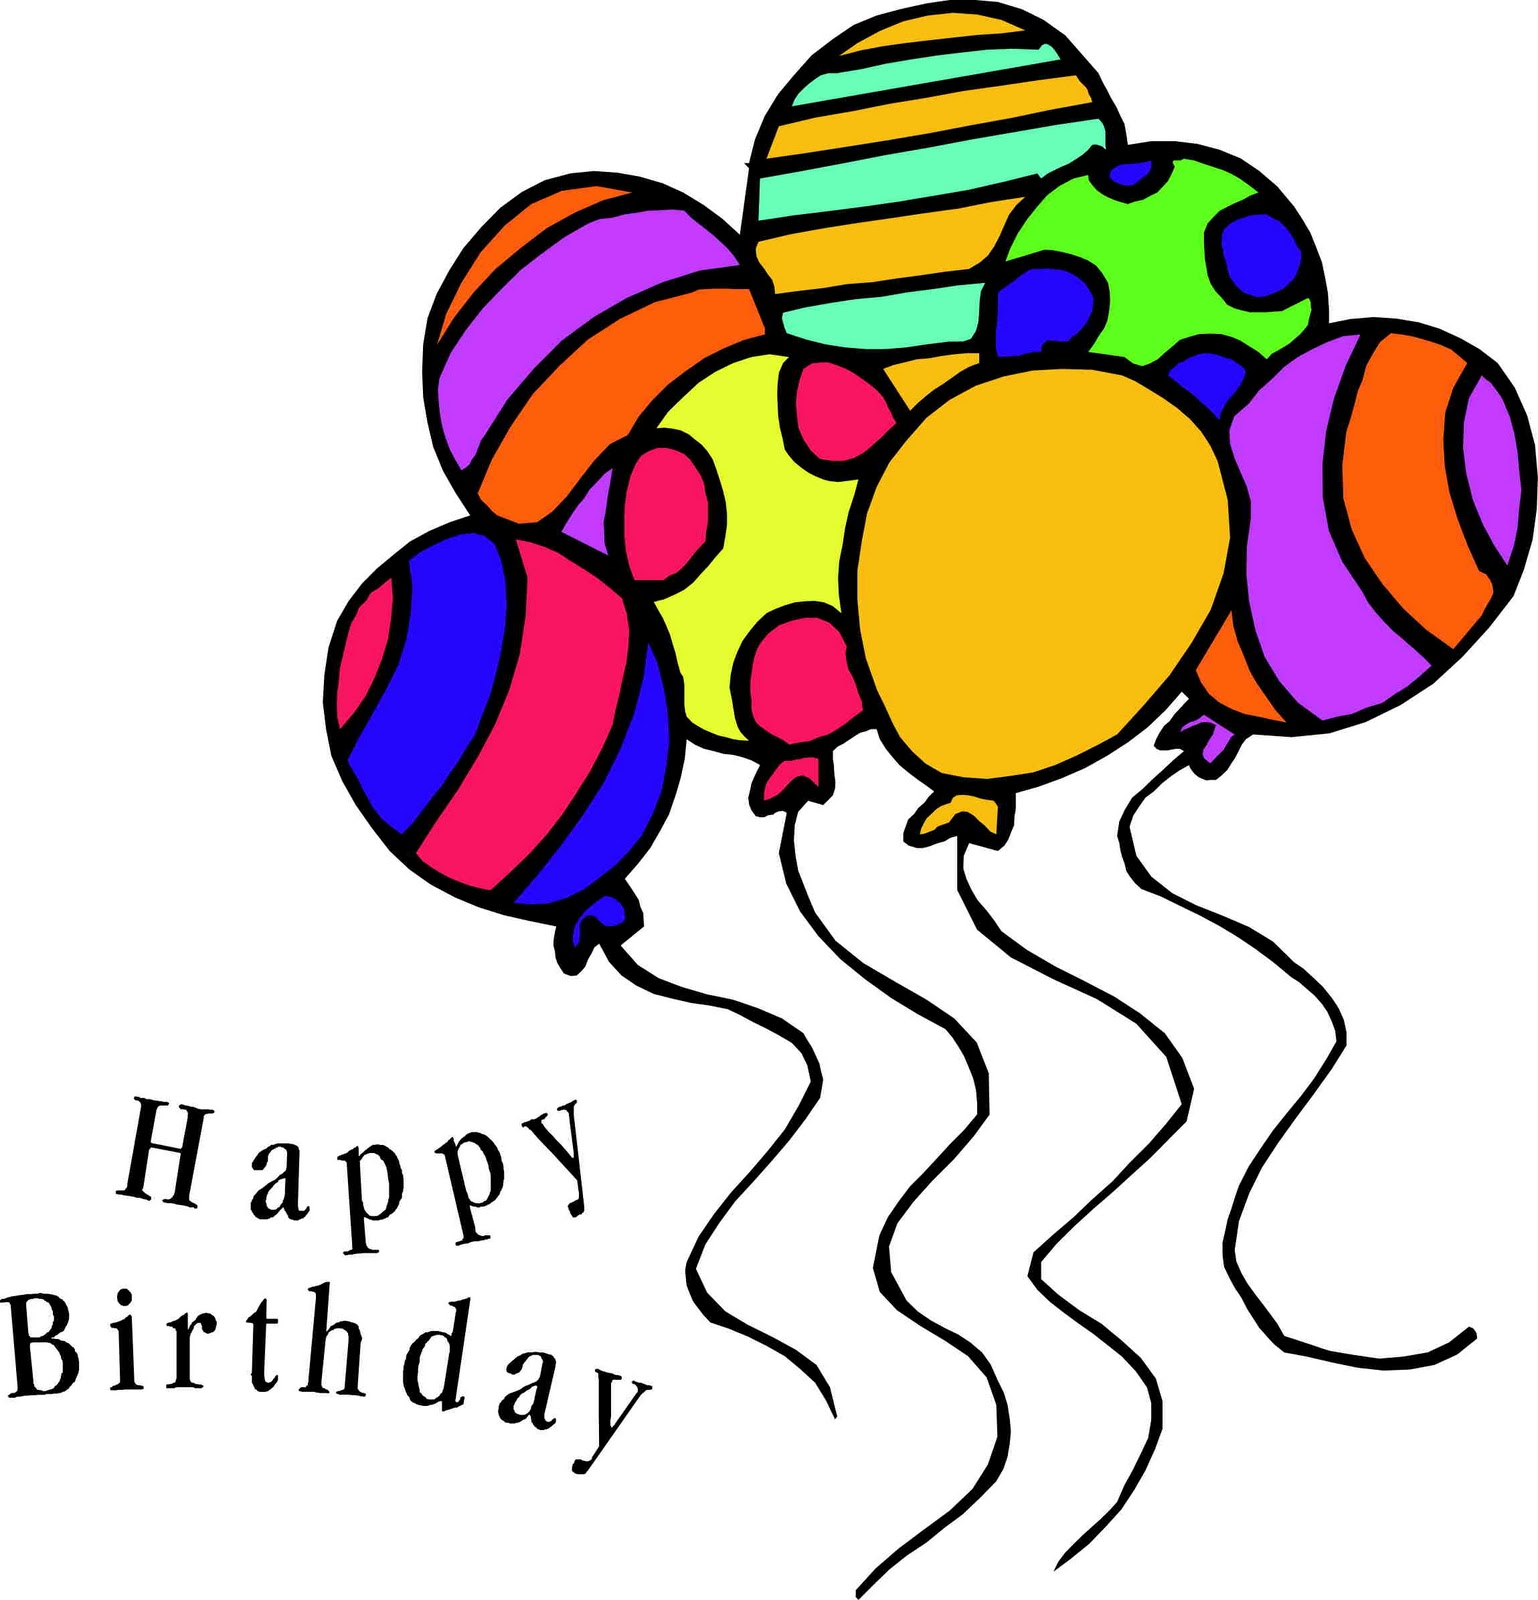 banner library Free clipart of happy birthday balloons. Cliparts download clip art